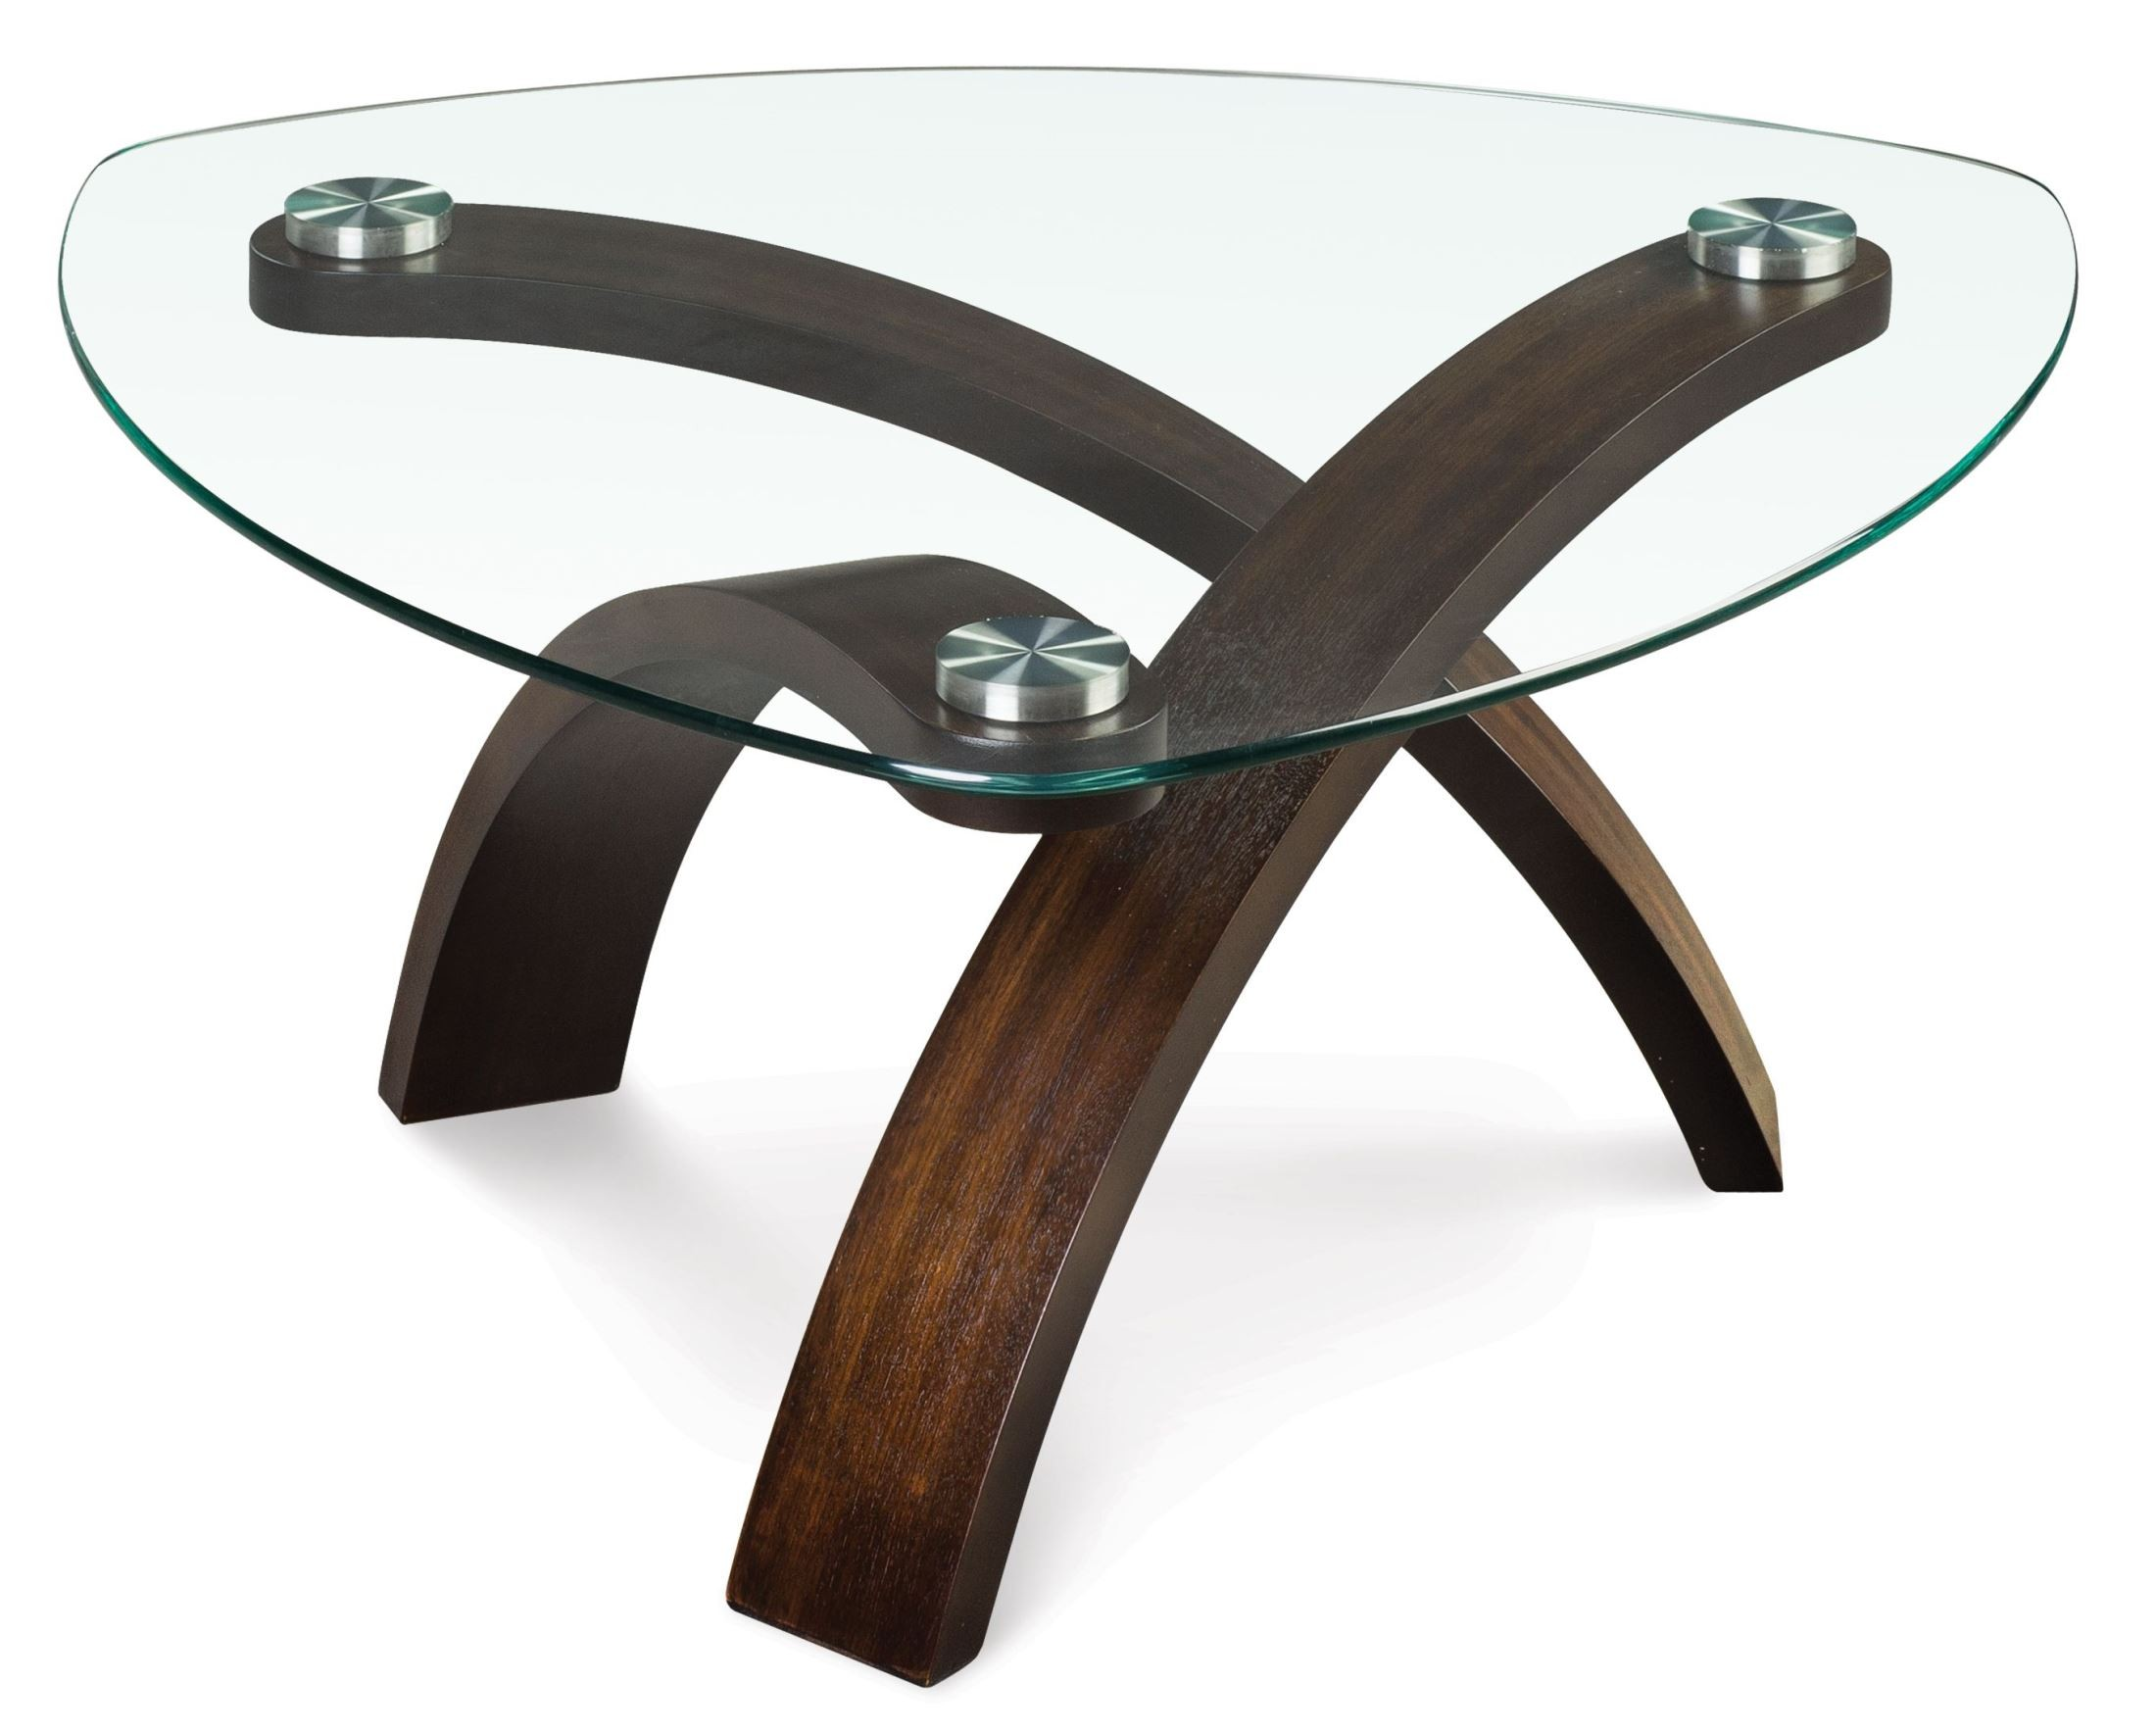 Allure Pie Shaped Cocktail Table From Magnussen Home T1396 65t B Coleman Furniture